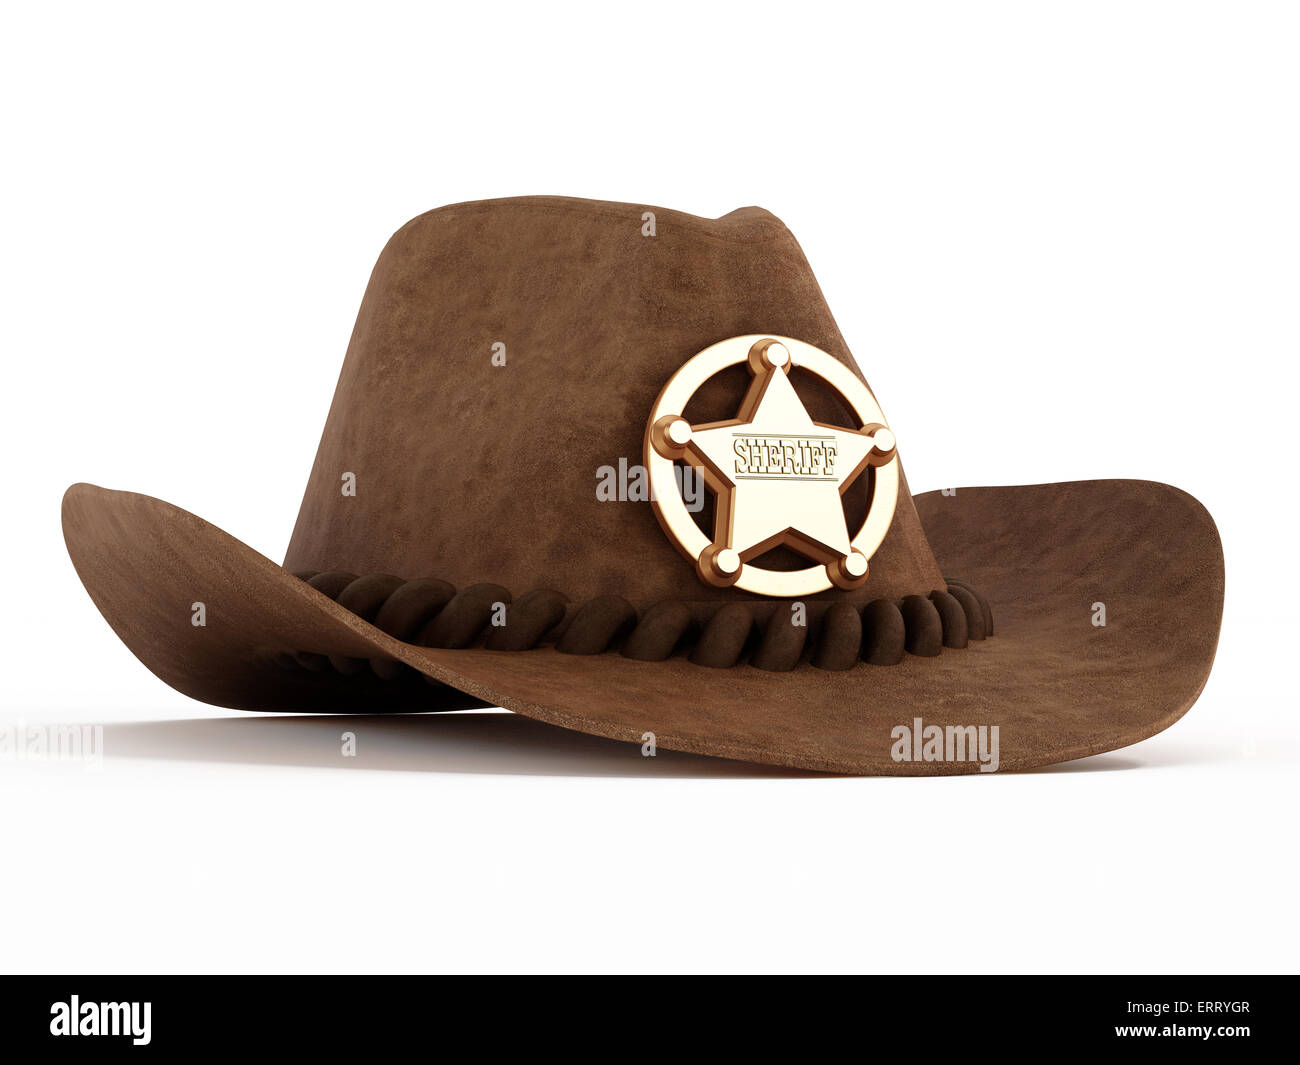 35ae9962 Cowboy hat with sheriff badge isolated on white background Stock ...